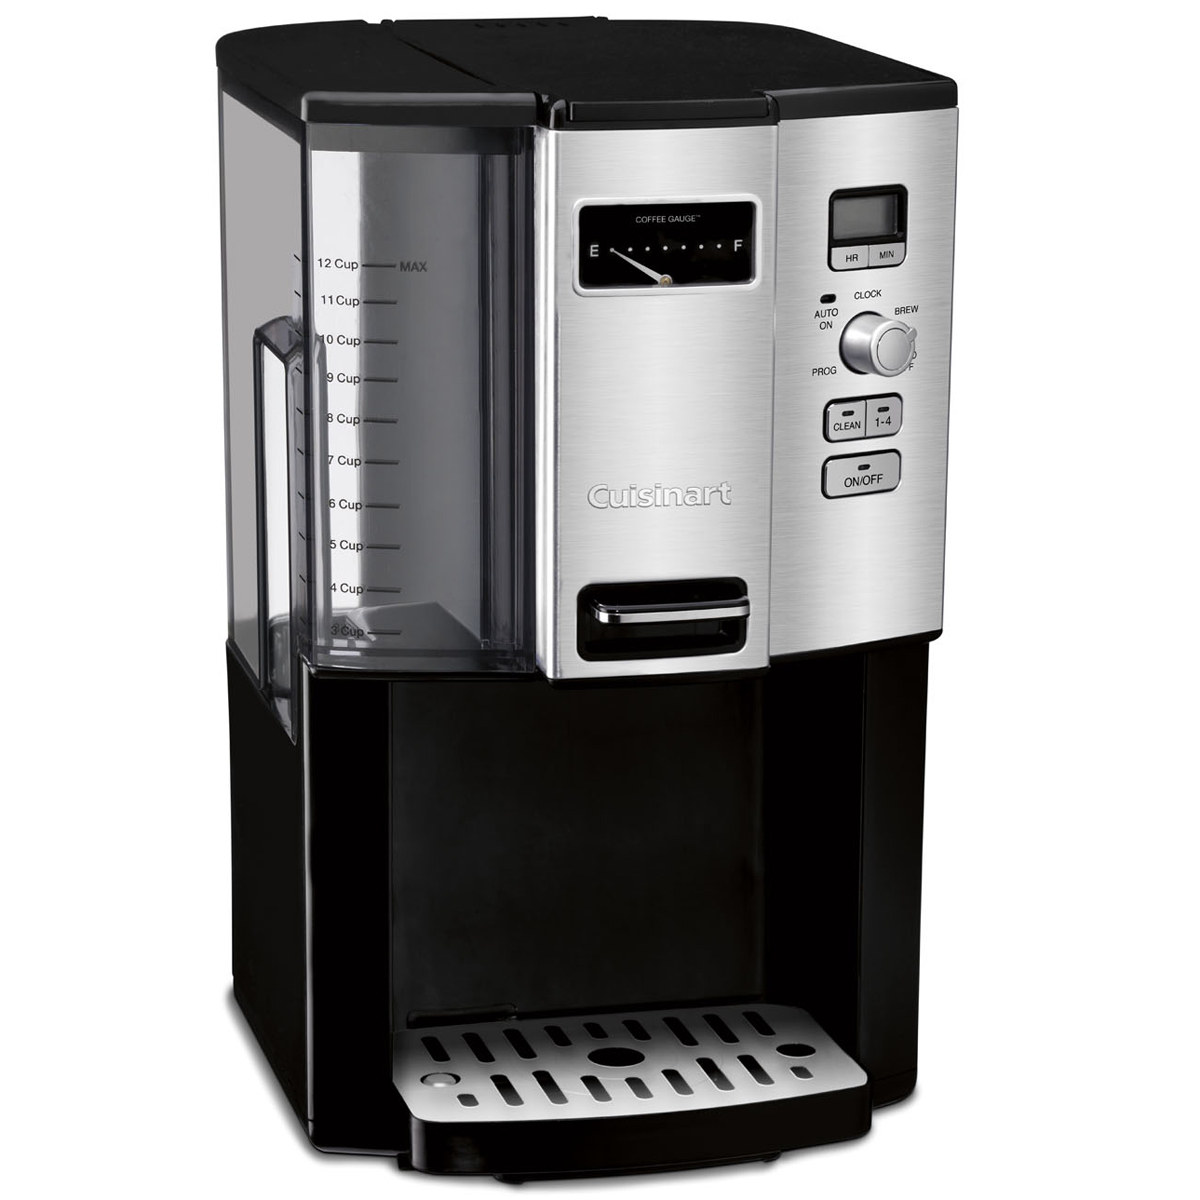 Coffee Maker With Hot Water On Demand : Coffee On Demand Cuisinart